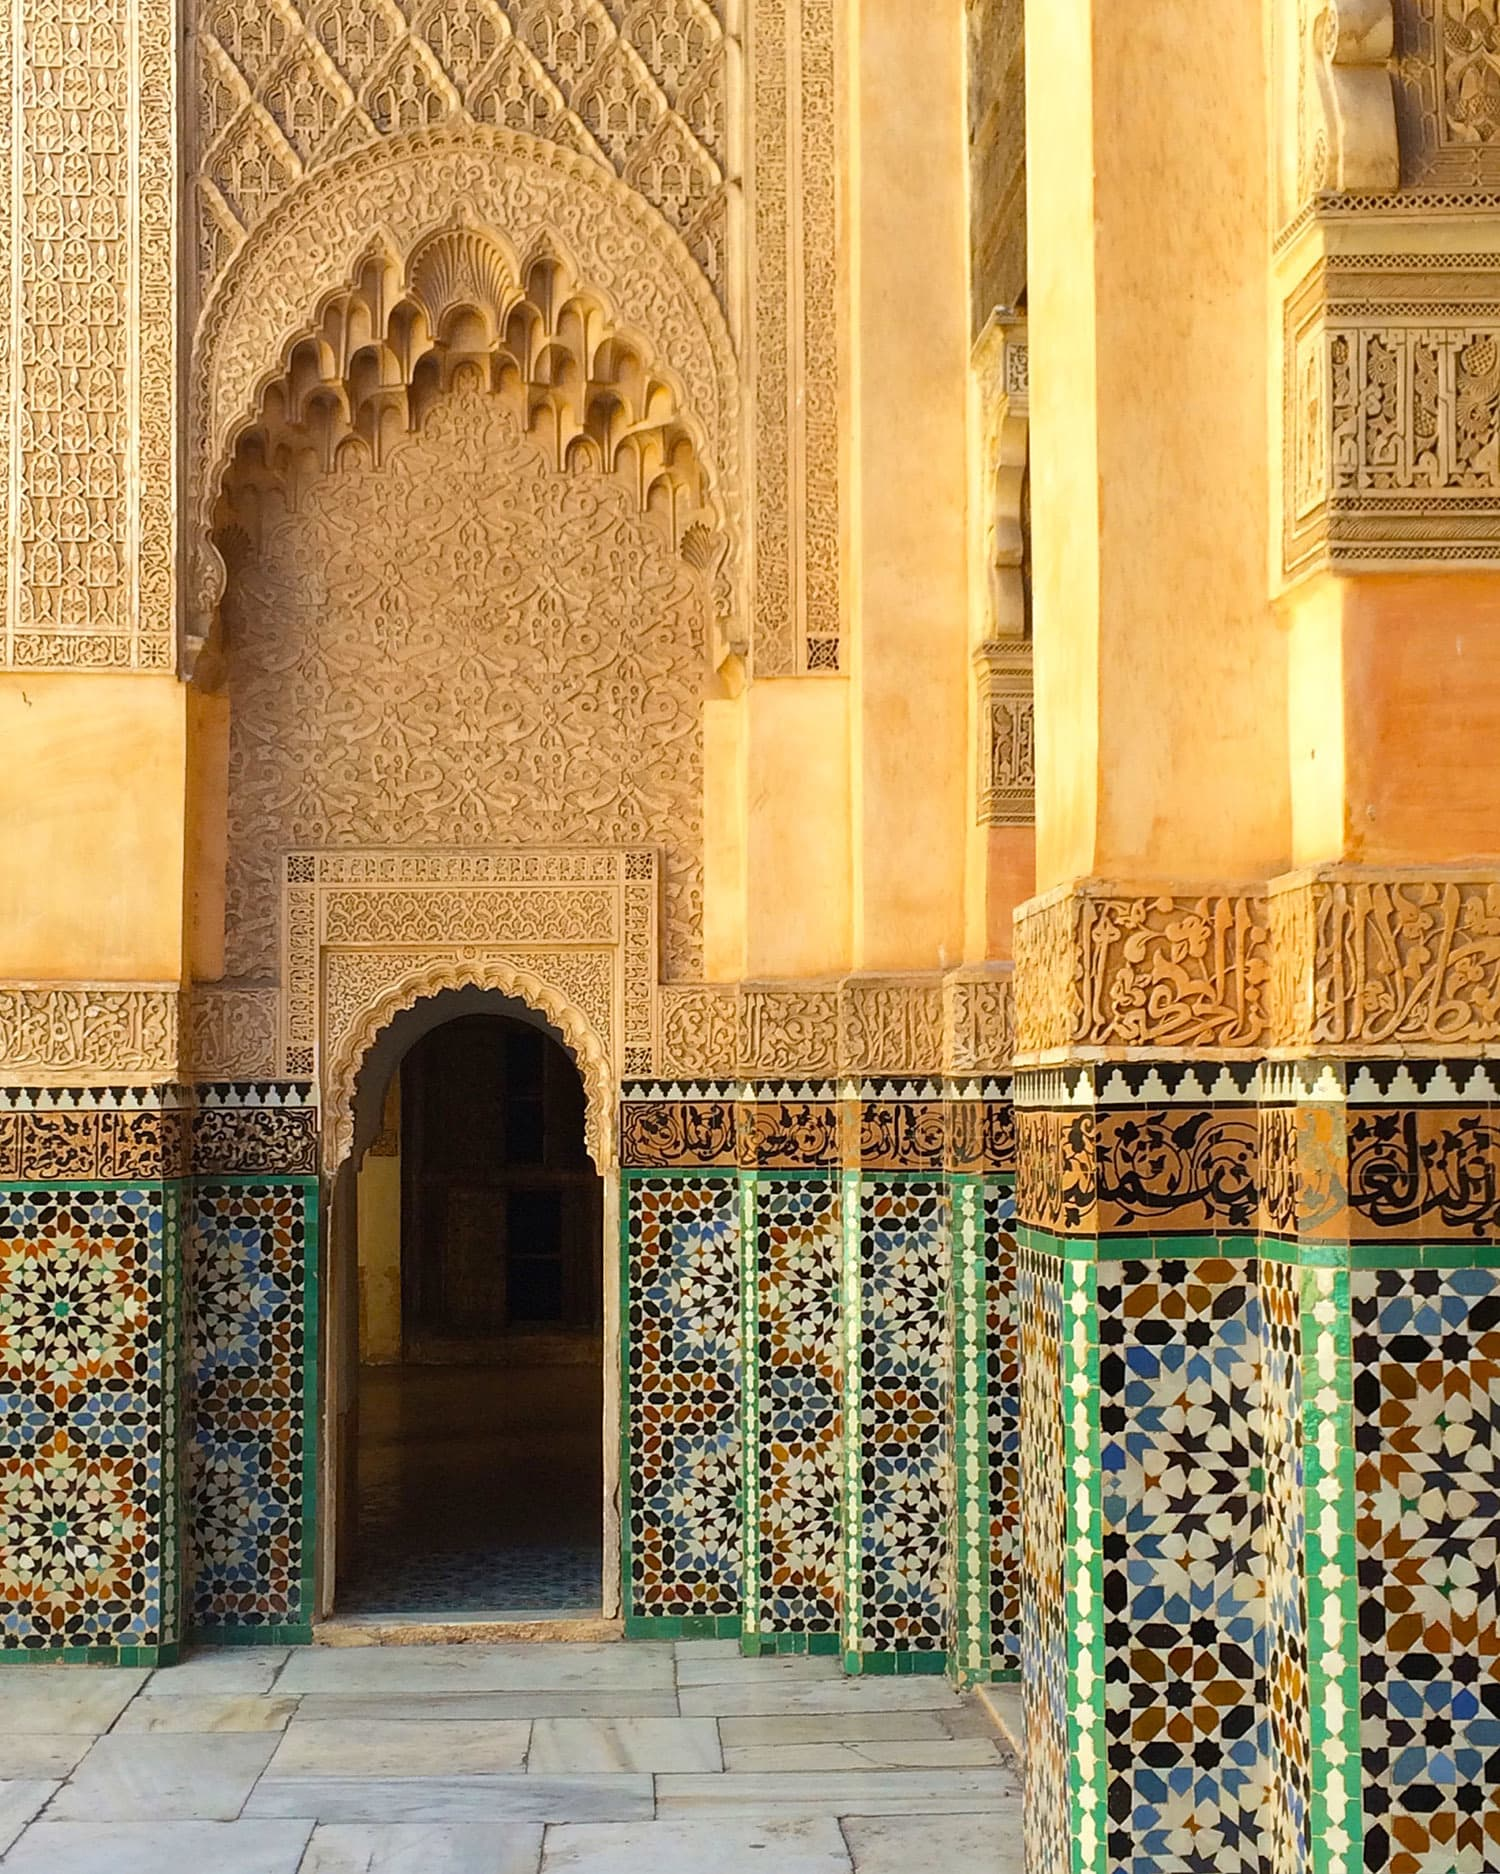 Colourful tiles, Arabic script, and ornate carvings at Medersa Ben Youssef.